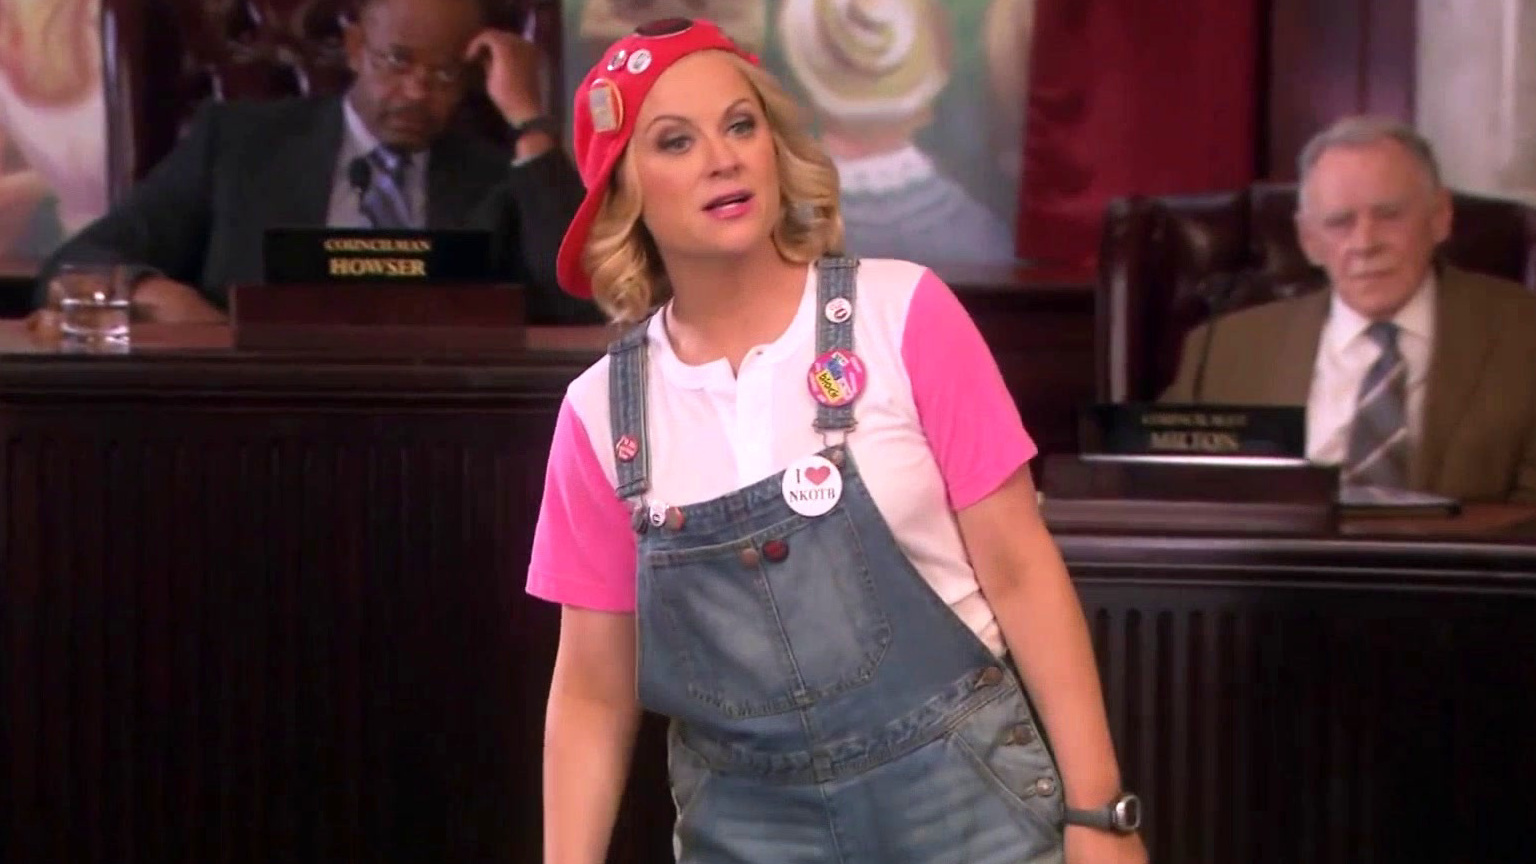 Parks And Recreation: Turning Up The Heat